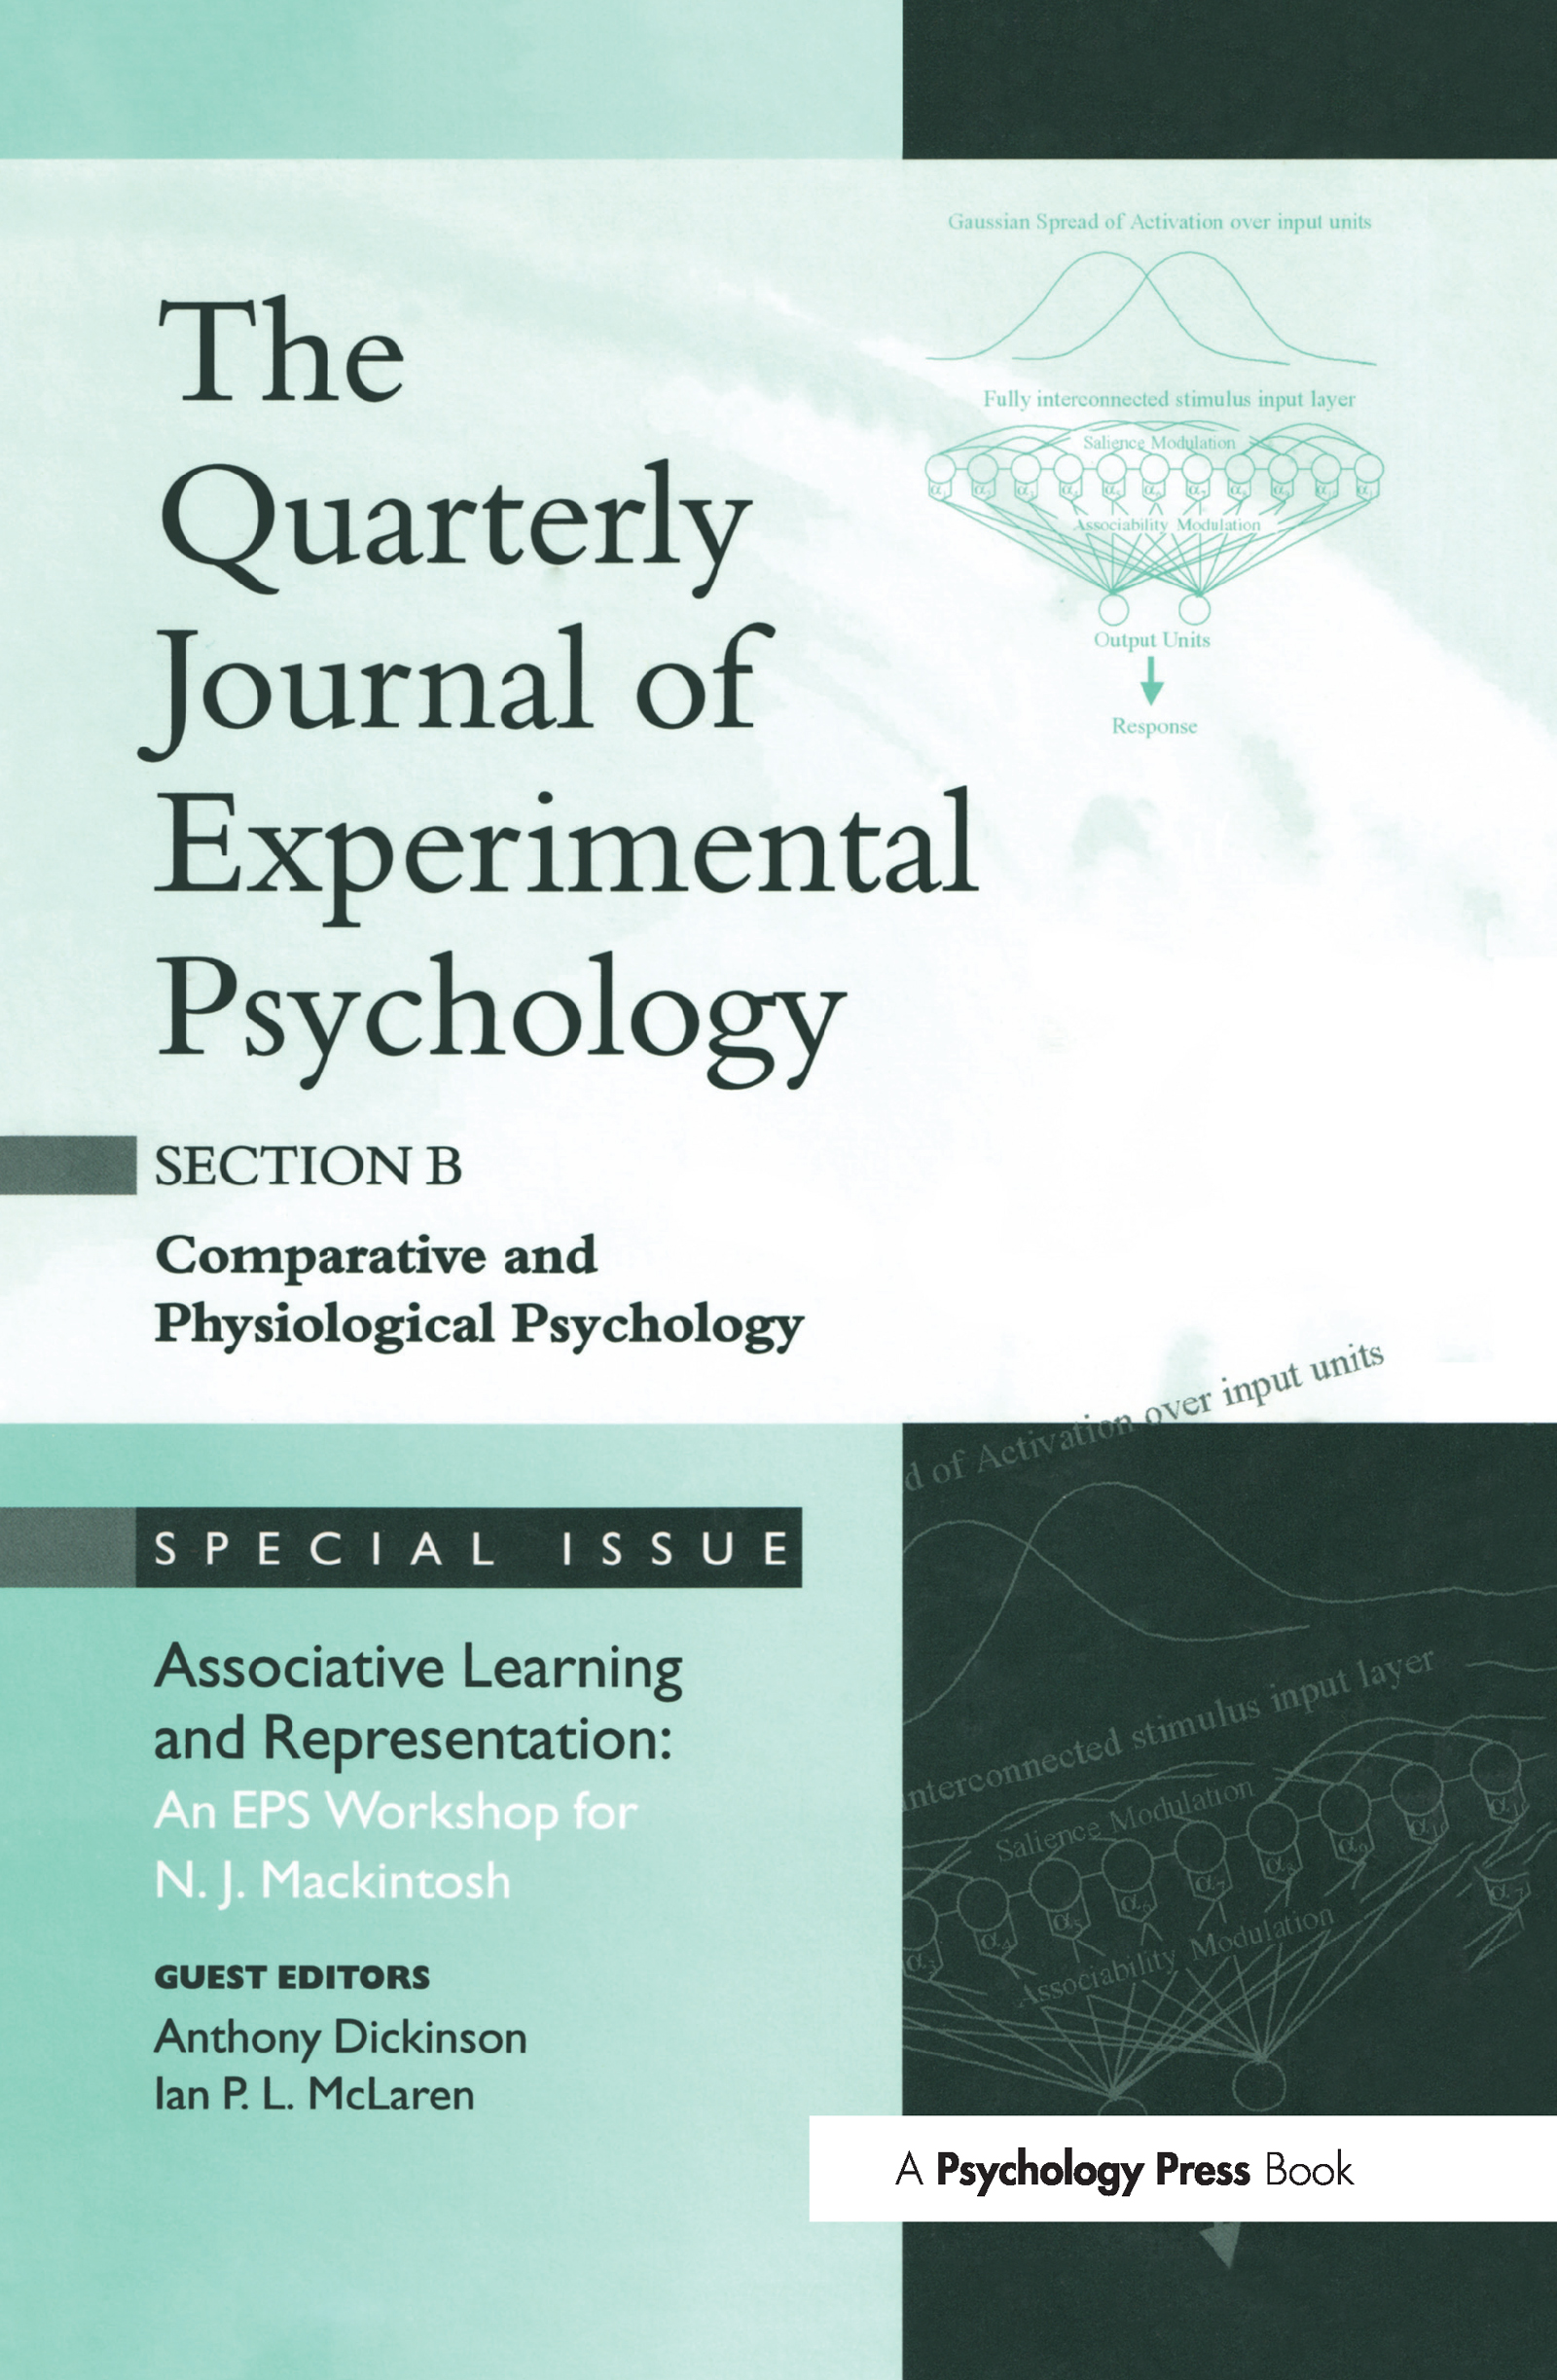 Associative Learning and Representation: An EPS Workshop for N.J. Mackintosh: A Special Issue of the Quarterly Journal of Experimental Psychology, Section B (Hardback) book cover